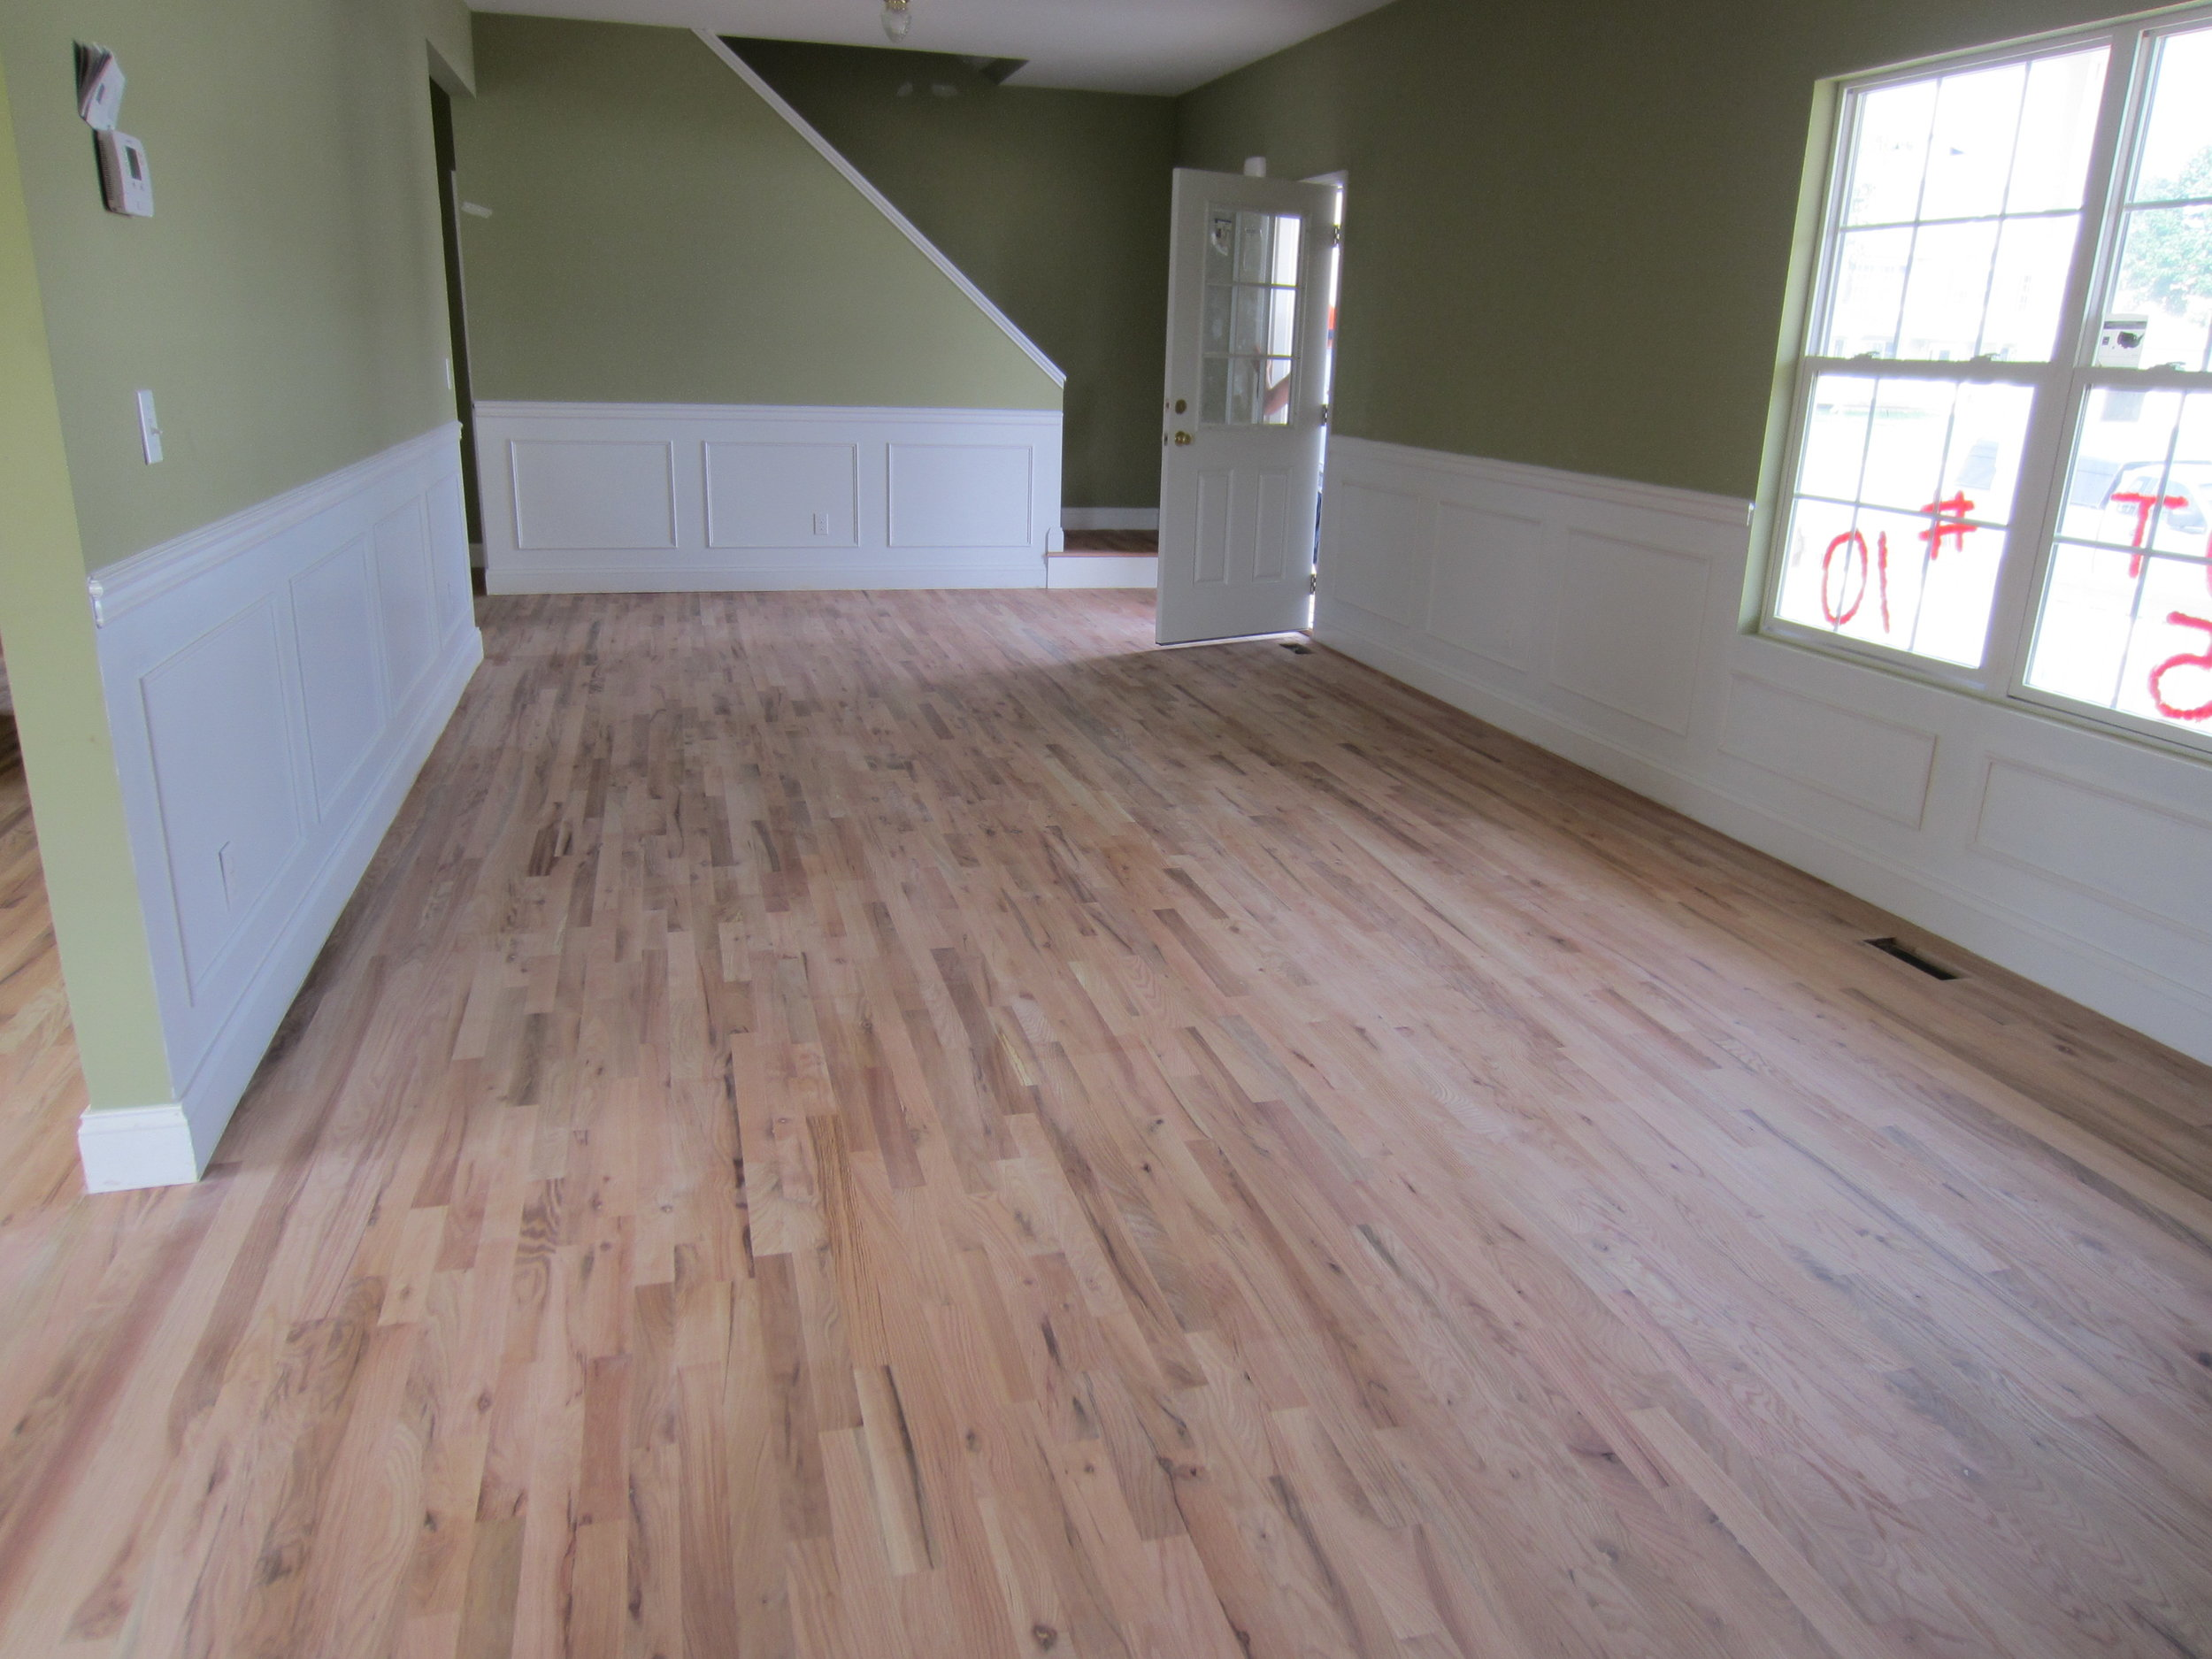 gallery floor floors after refinish sanding beautiful wood surface co renovating refinishing in wonderful